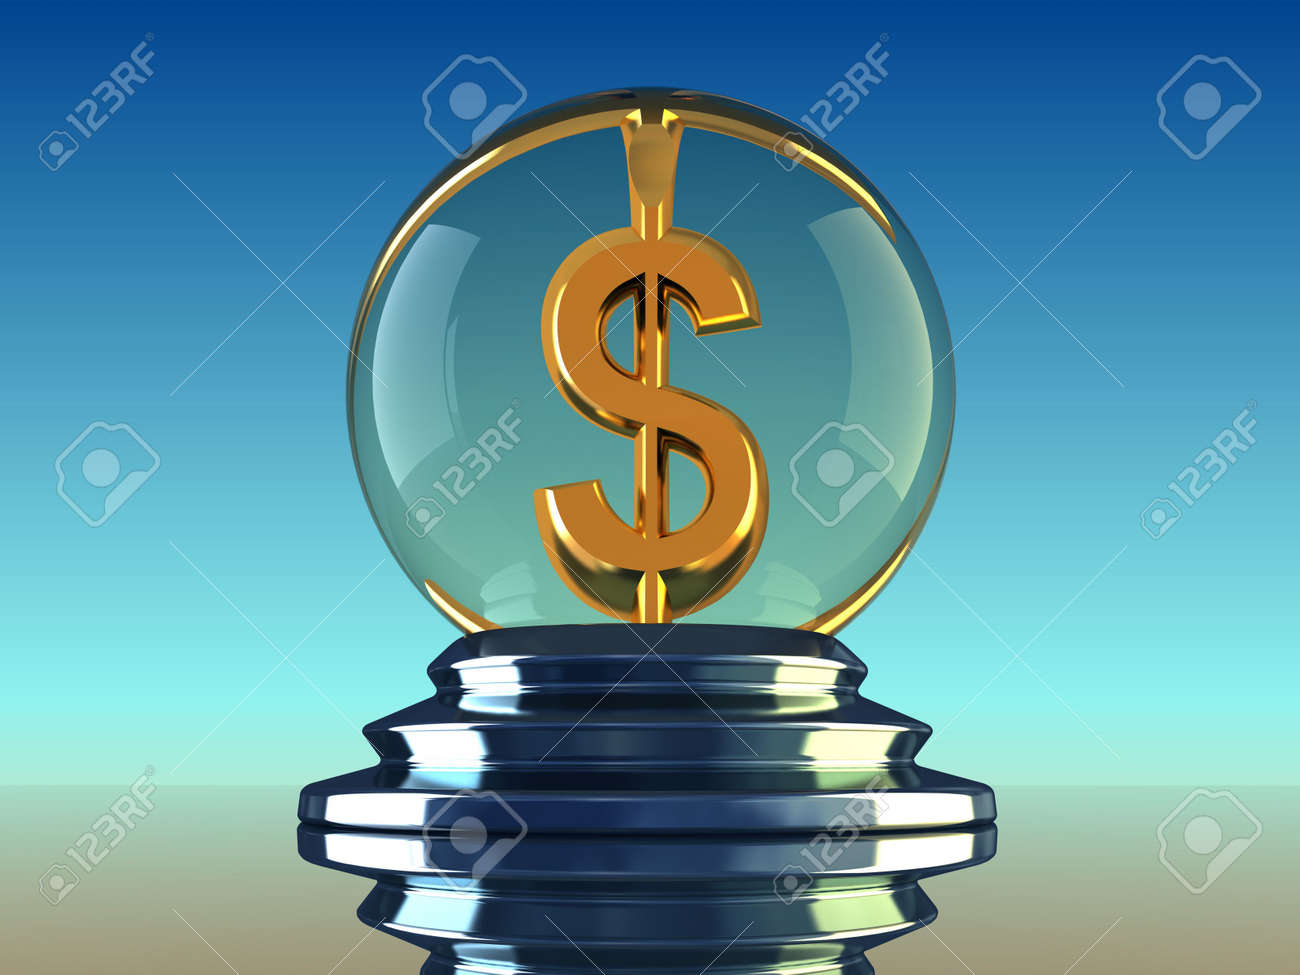 Cristal ball with dollar symbol inside - 3d render Stock Photo - 5862830